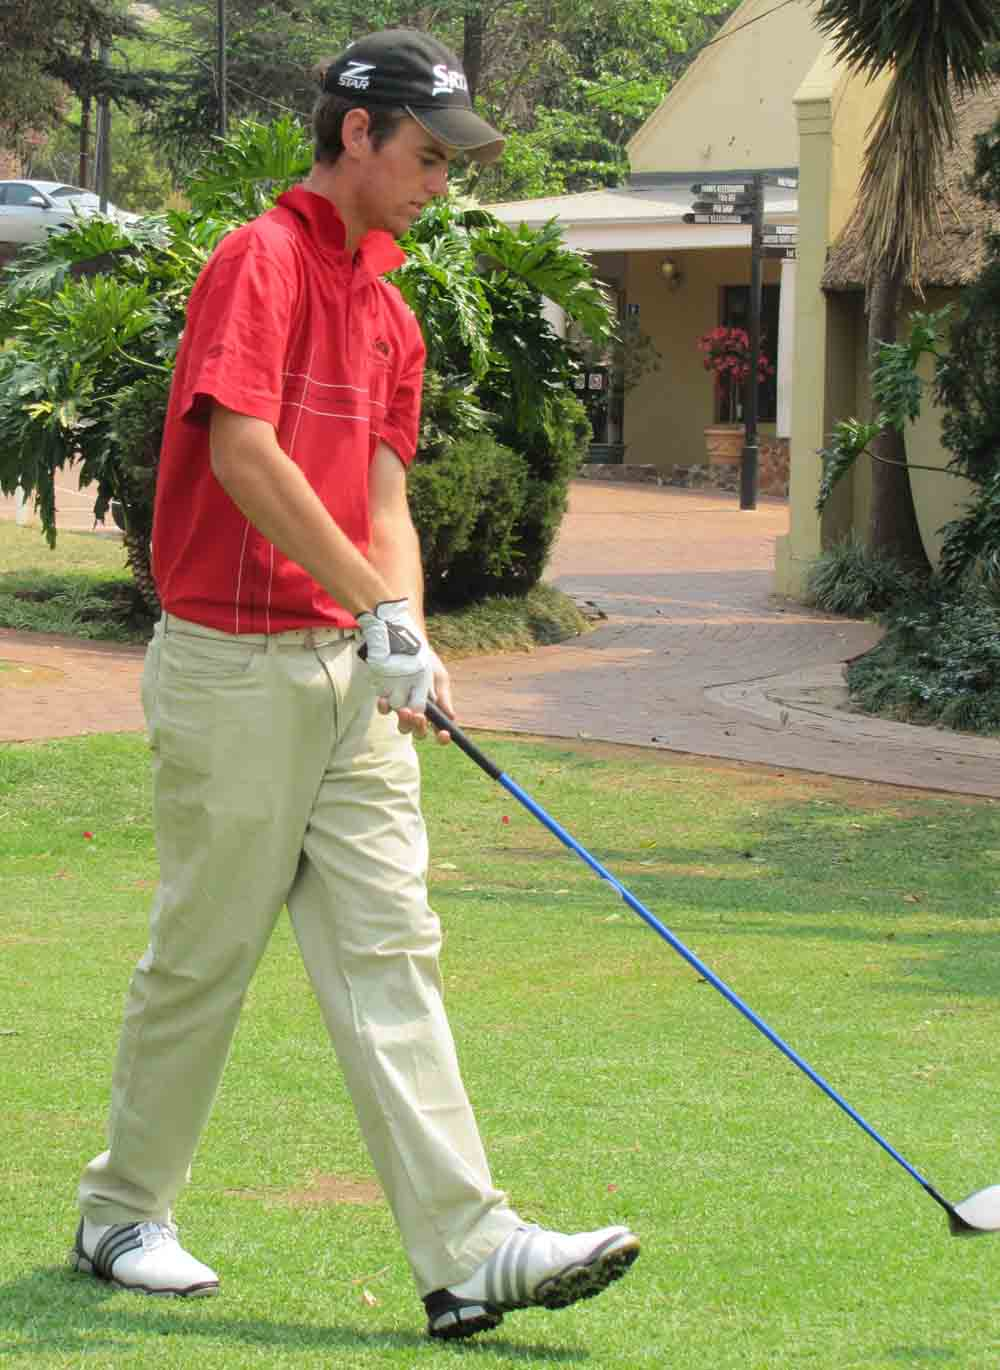 Luke Jerling, star KPMG NMMU golfer, is ready to compete in the Challenge Cup in Johannesburg next week. Photo: supplied